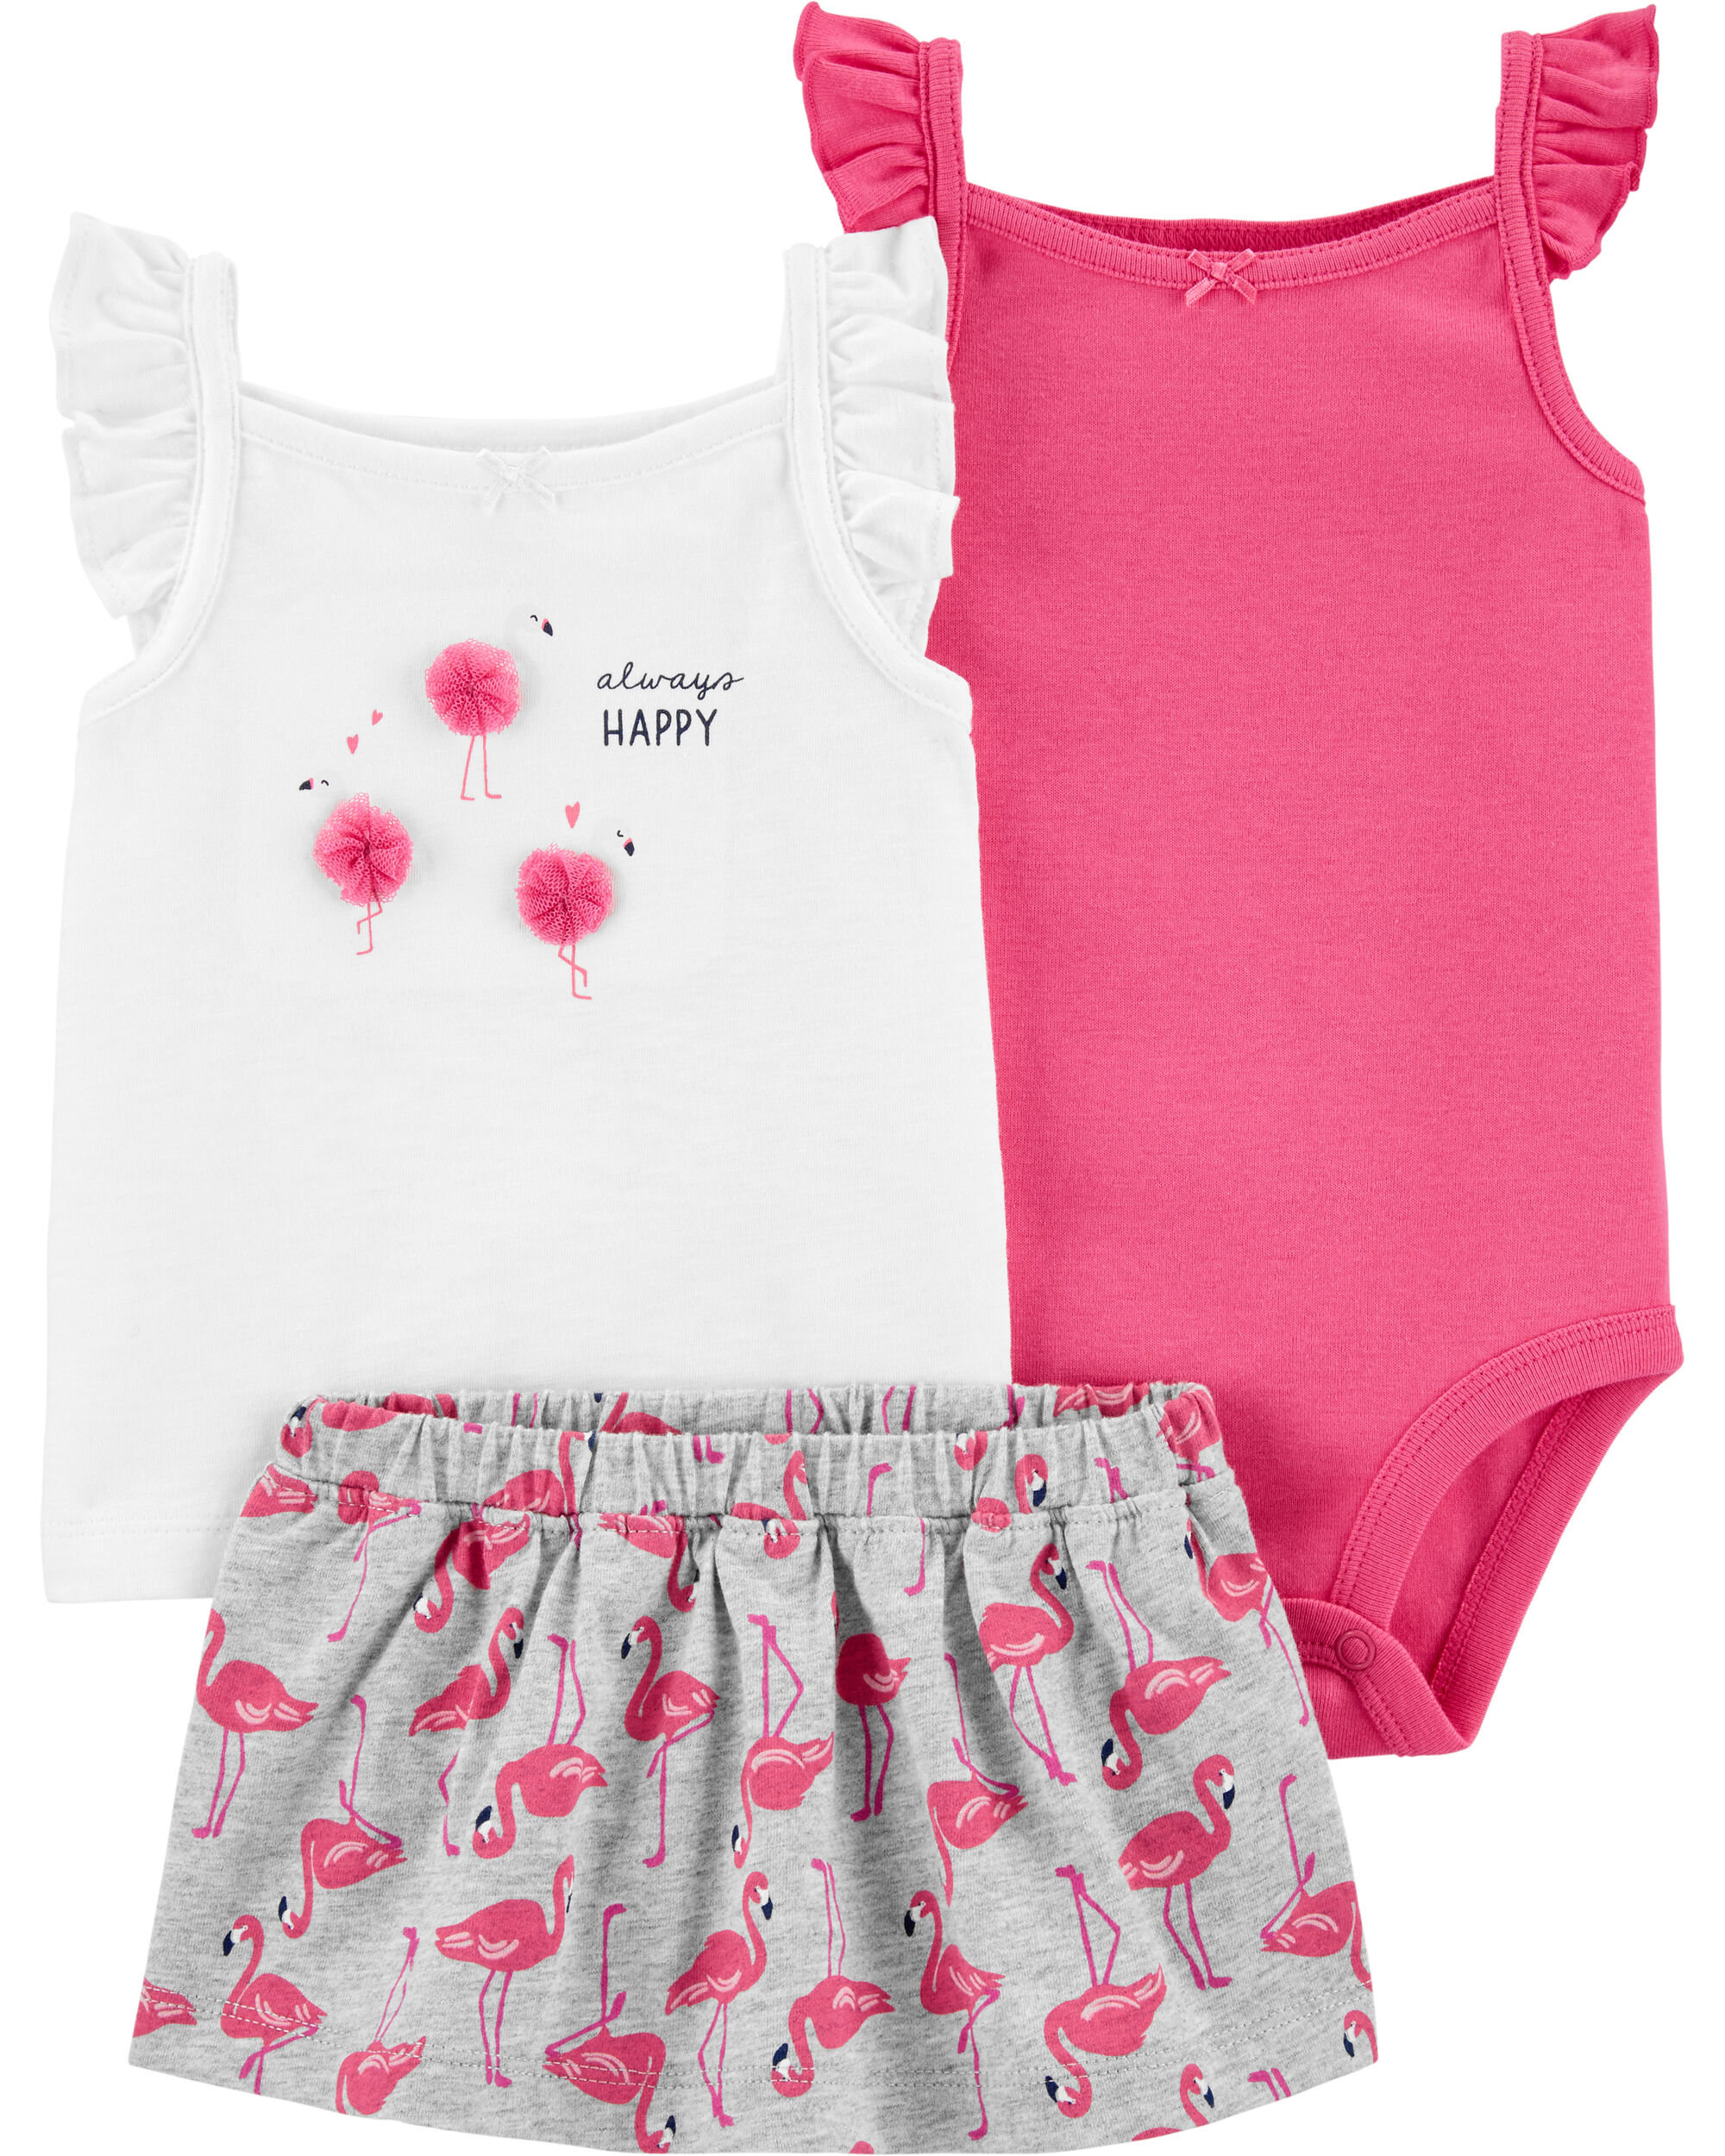 *DOORBUSTER* 3-Piece Flamingo Little Skort Set